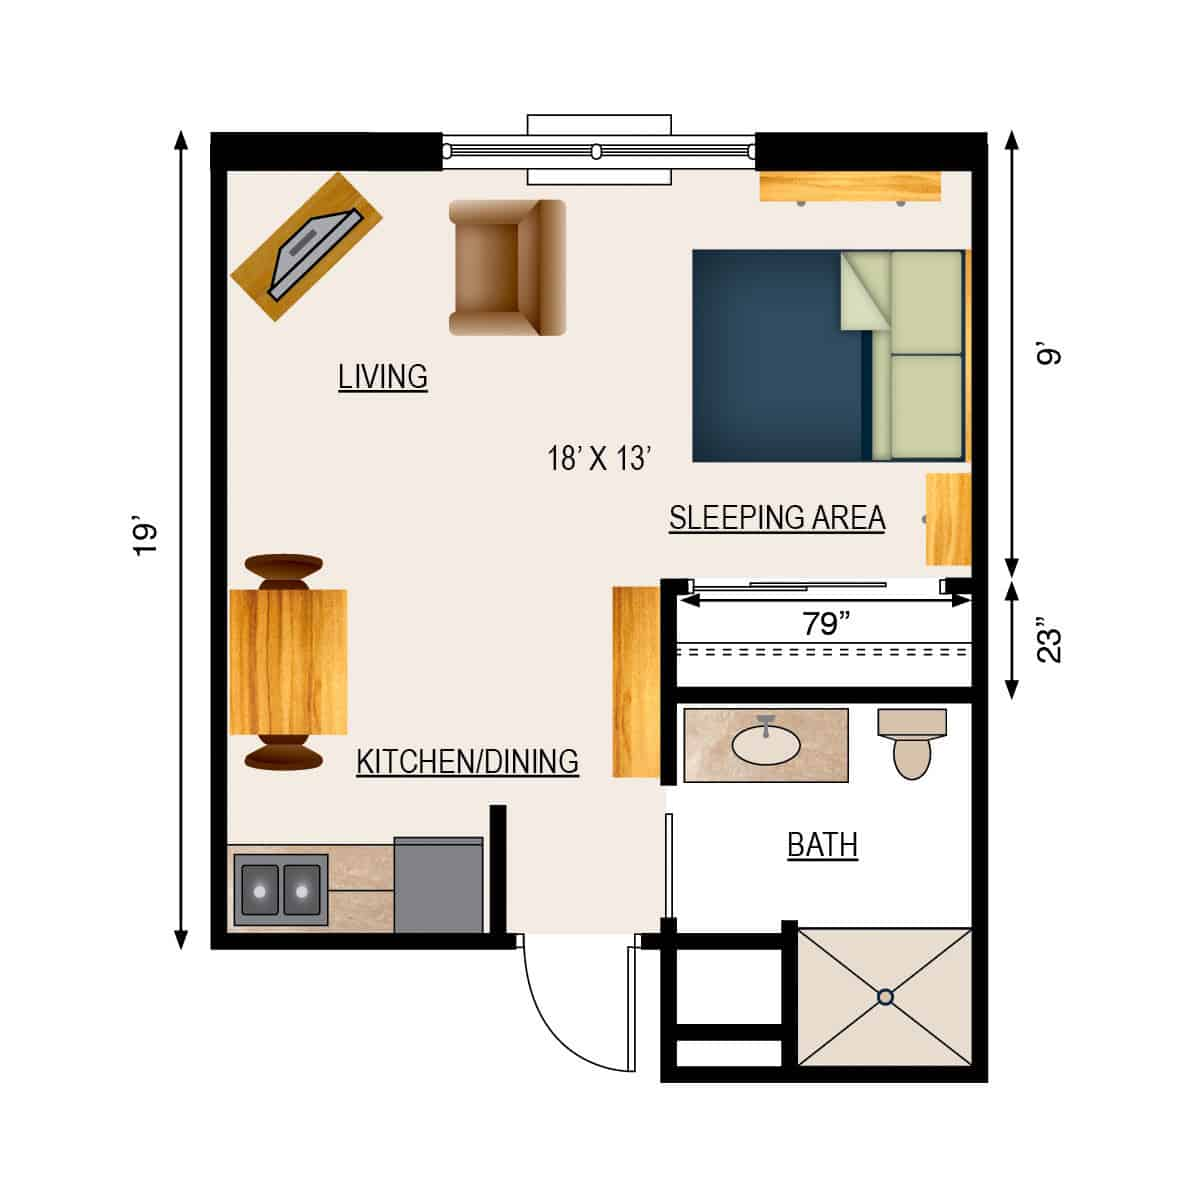 Retirement Home Floor Plans, Assisted Living Floor Plans